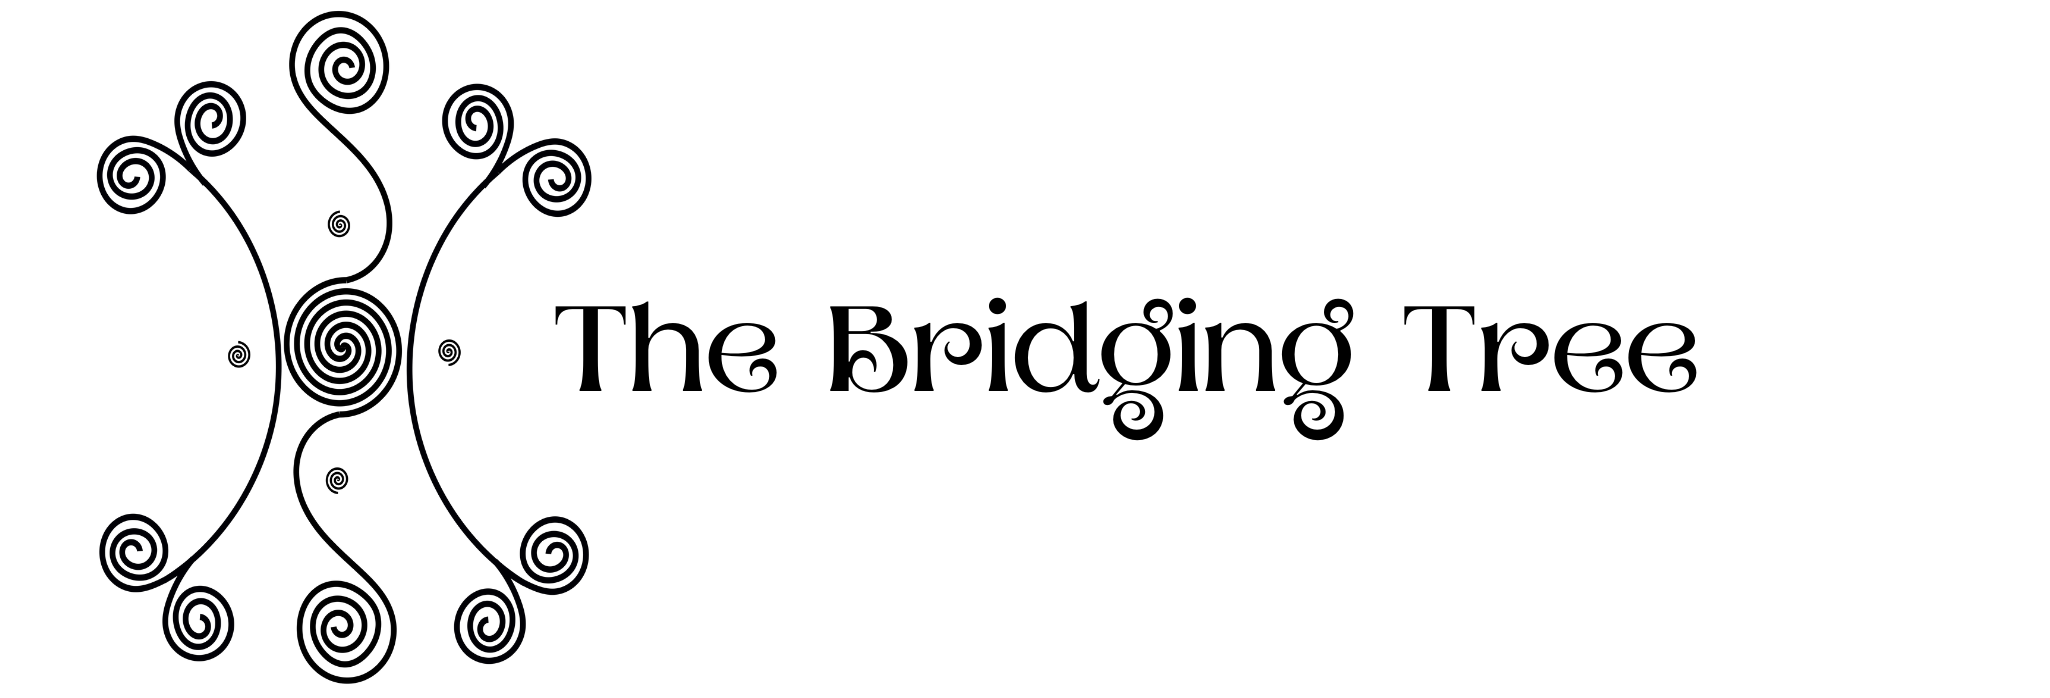 The Bridging Tree